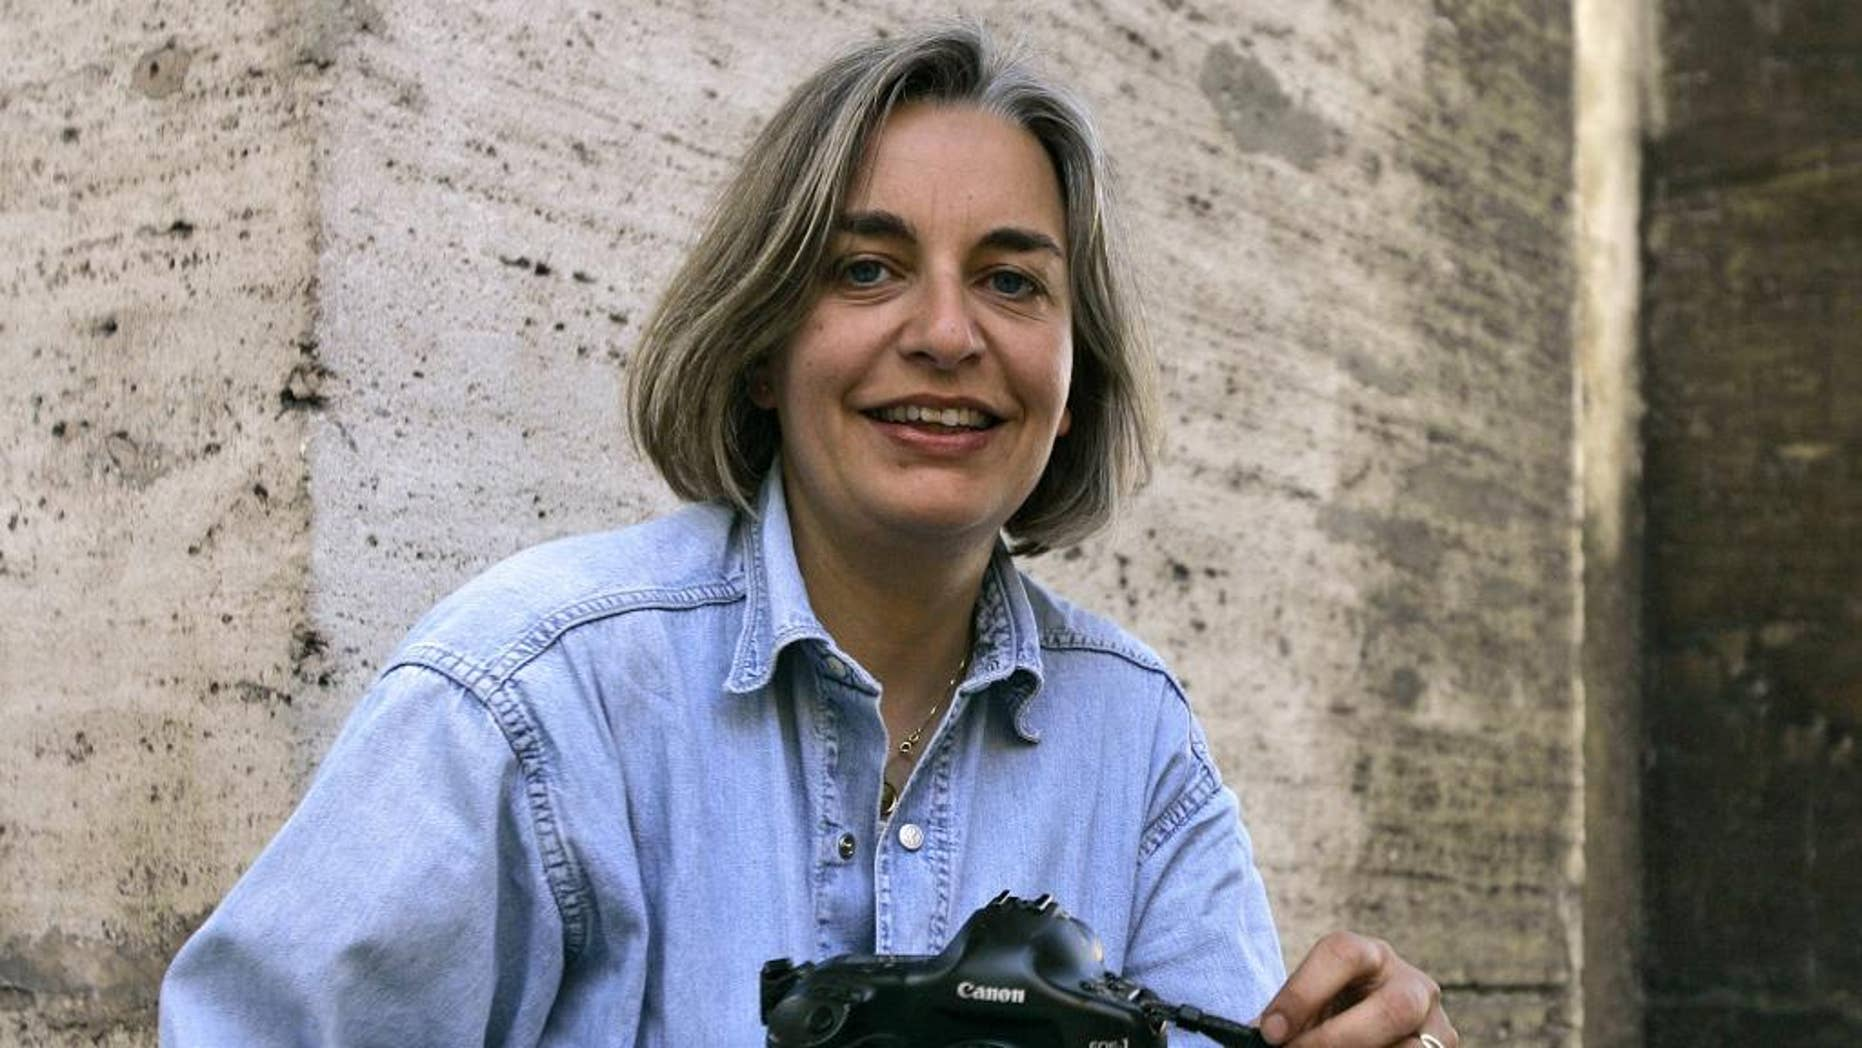 FILE - In this April 7, 2005 file photo, Associated Press photographer Anja Niedringhaus poses in Rome. Niedringhaus, 48, was killed and an AP reporter was wounded on April 4, 2014, when an Afghan policeman opened fire while they were sitting in their car in eastern Afghanistan. At least 60 journalists around the world were killed in 2014 while on the job or because of their work, and 44 percent of them were targeted for murder, the Committee to Protect Journalists says. (AP Photo/Peter Dejong, File)